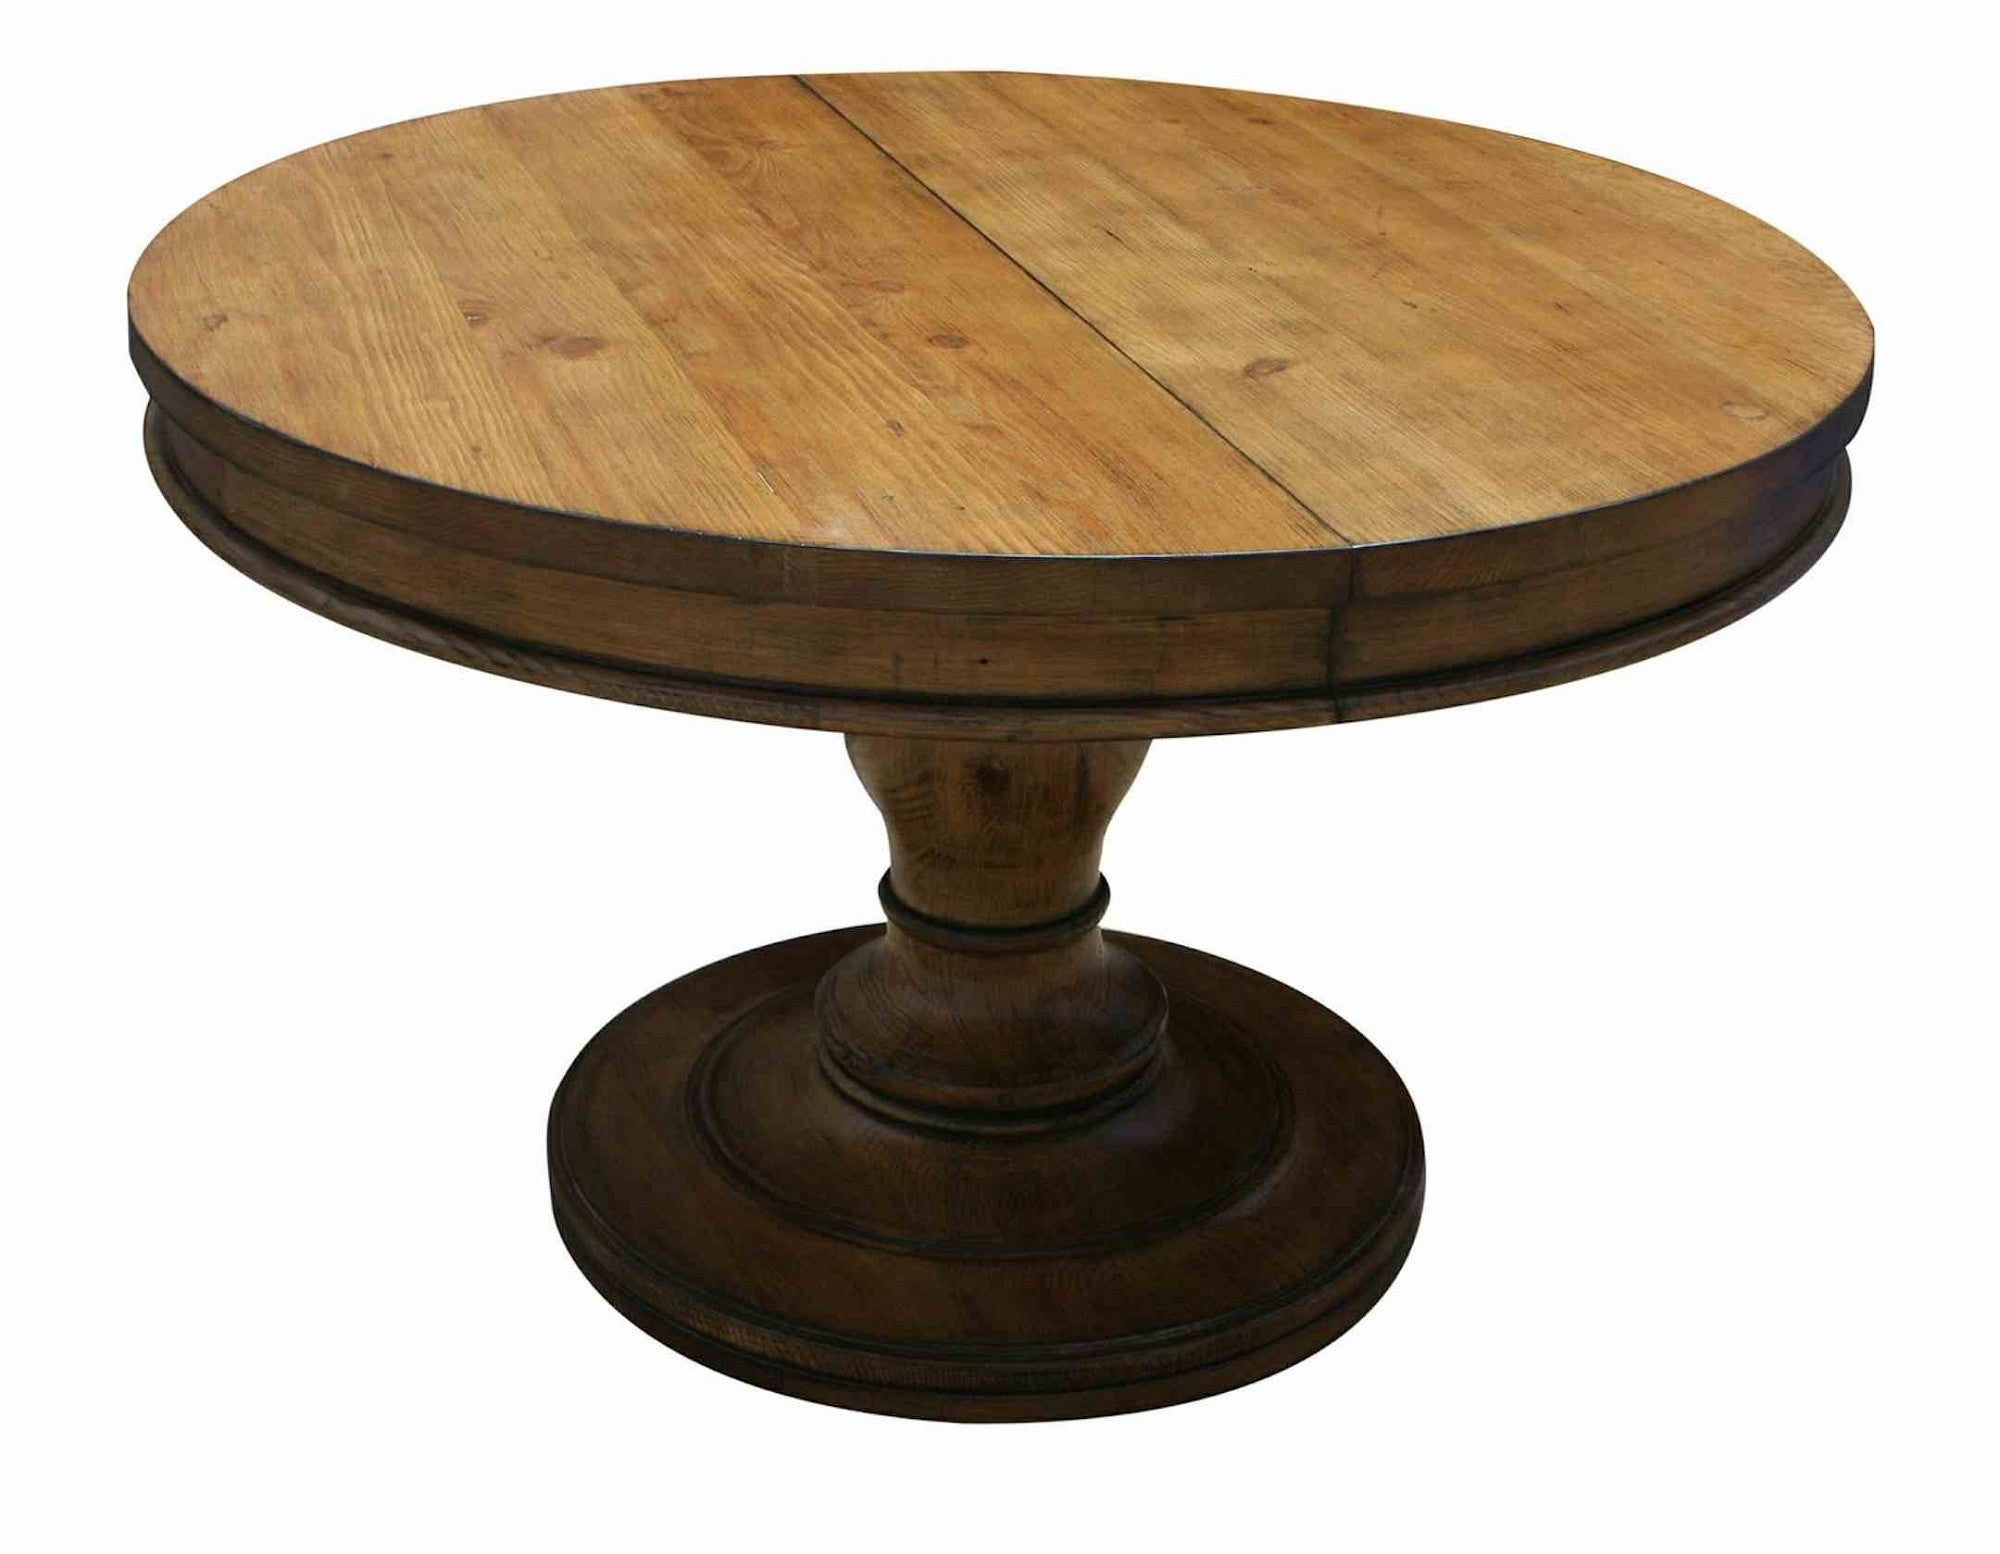 Westport Round Reclaimed Wood Extension Pedestal Table – Mortise & Tenon